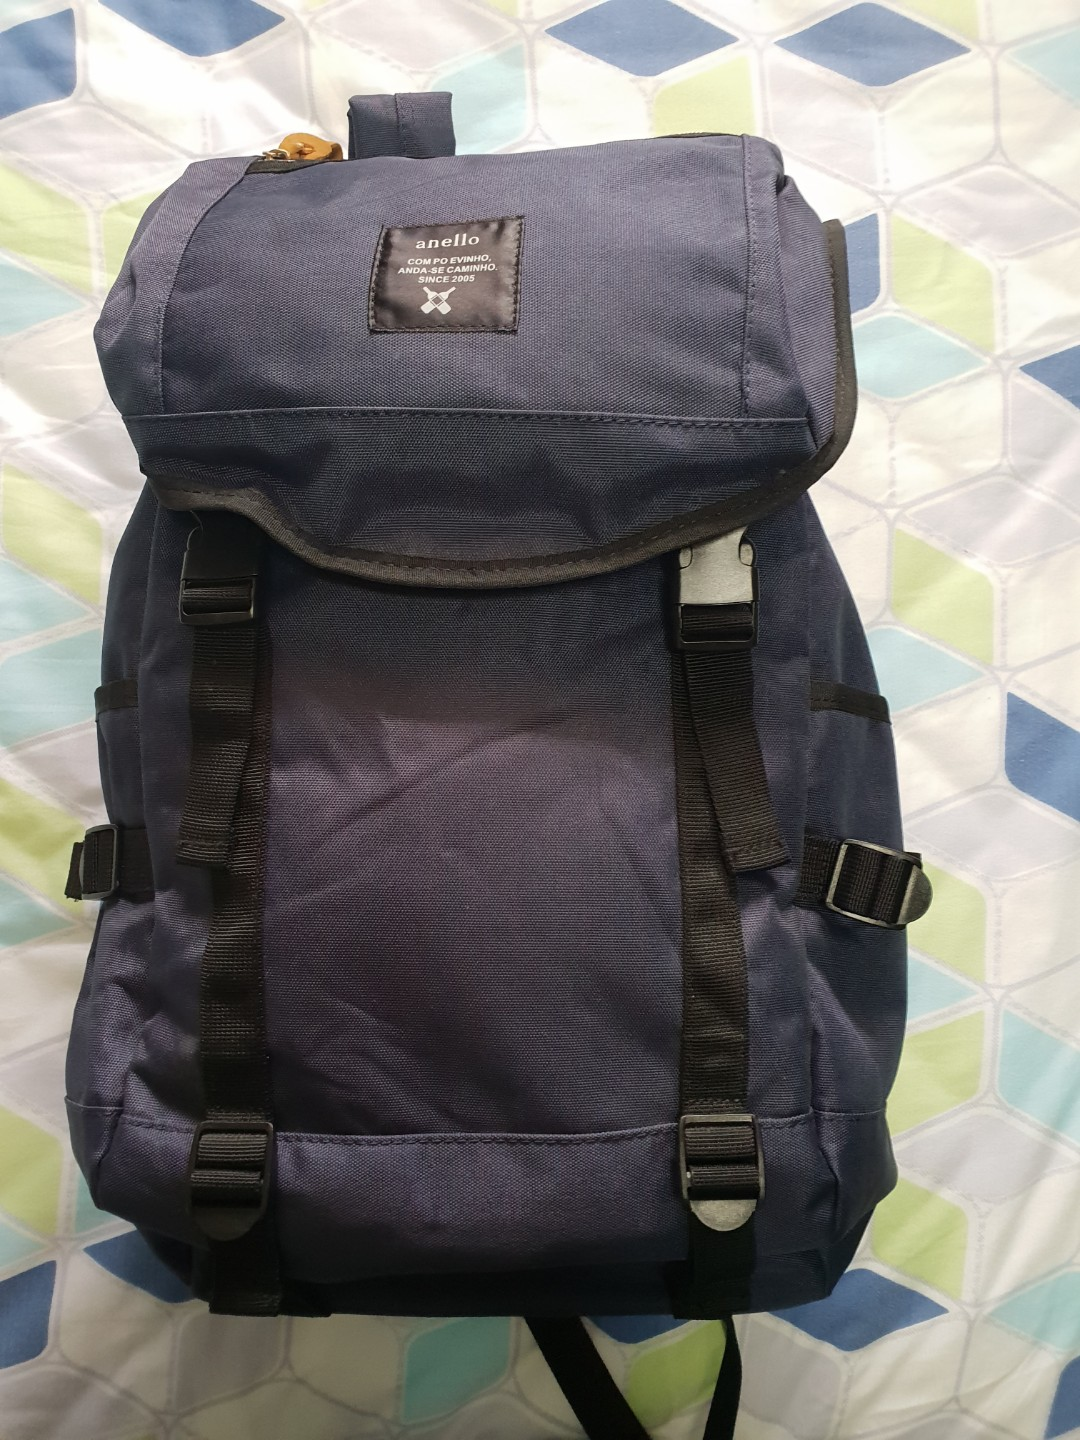 47d2d4a8b88 Anello backpack bag